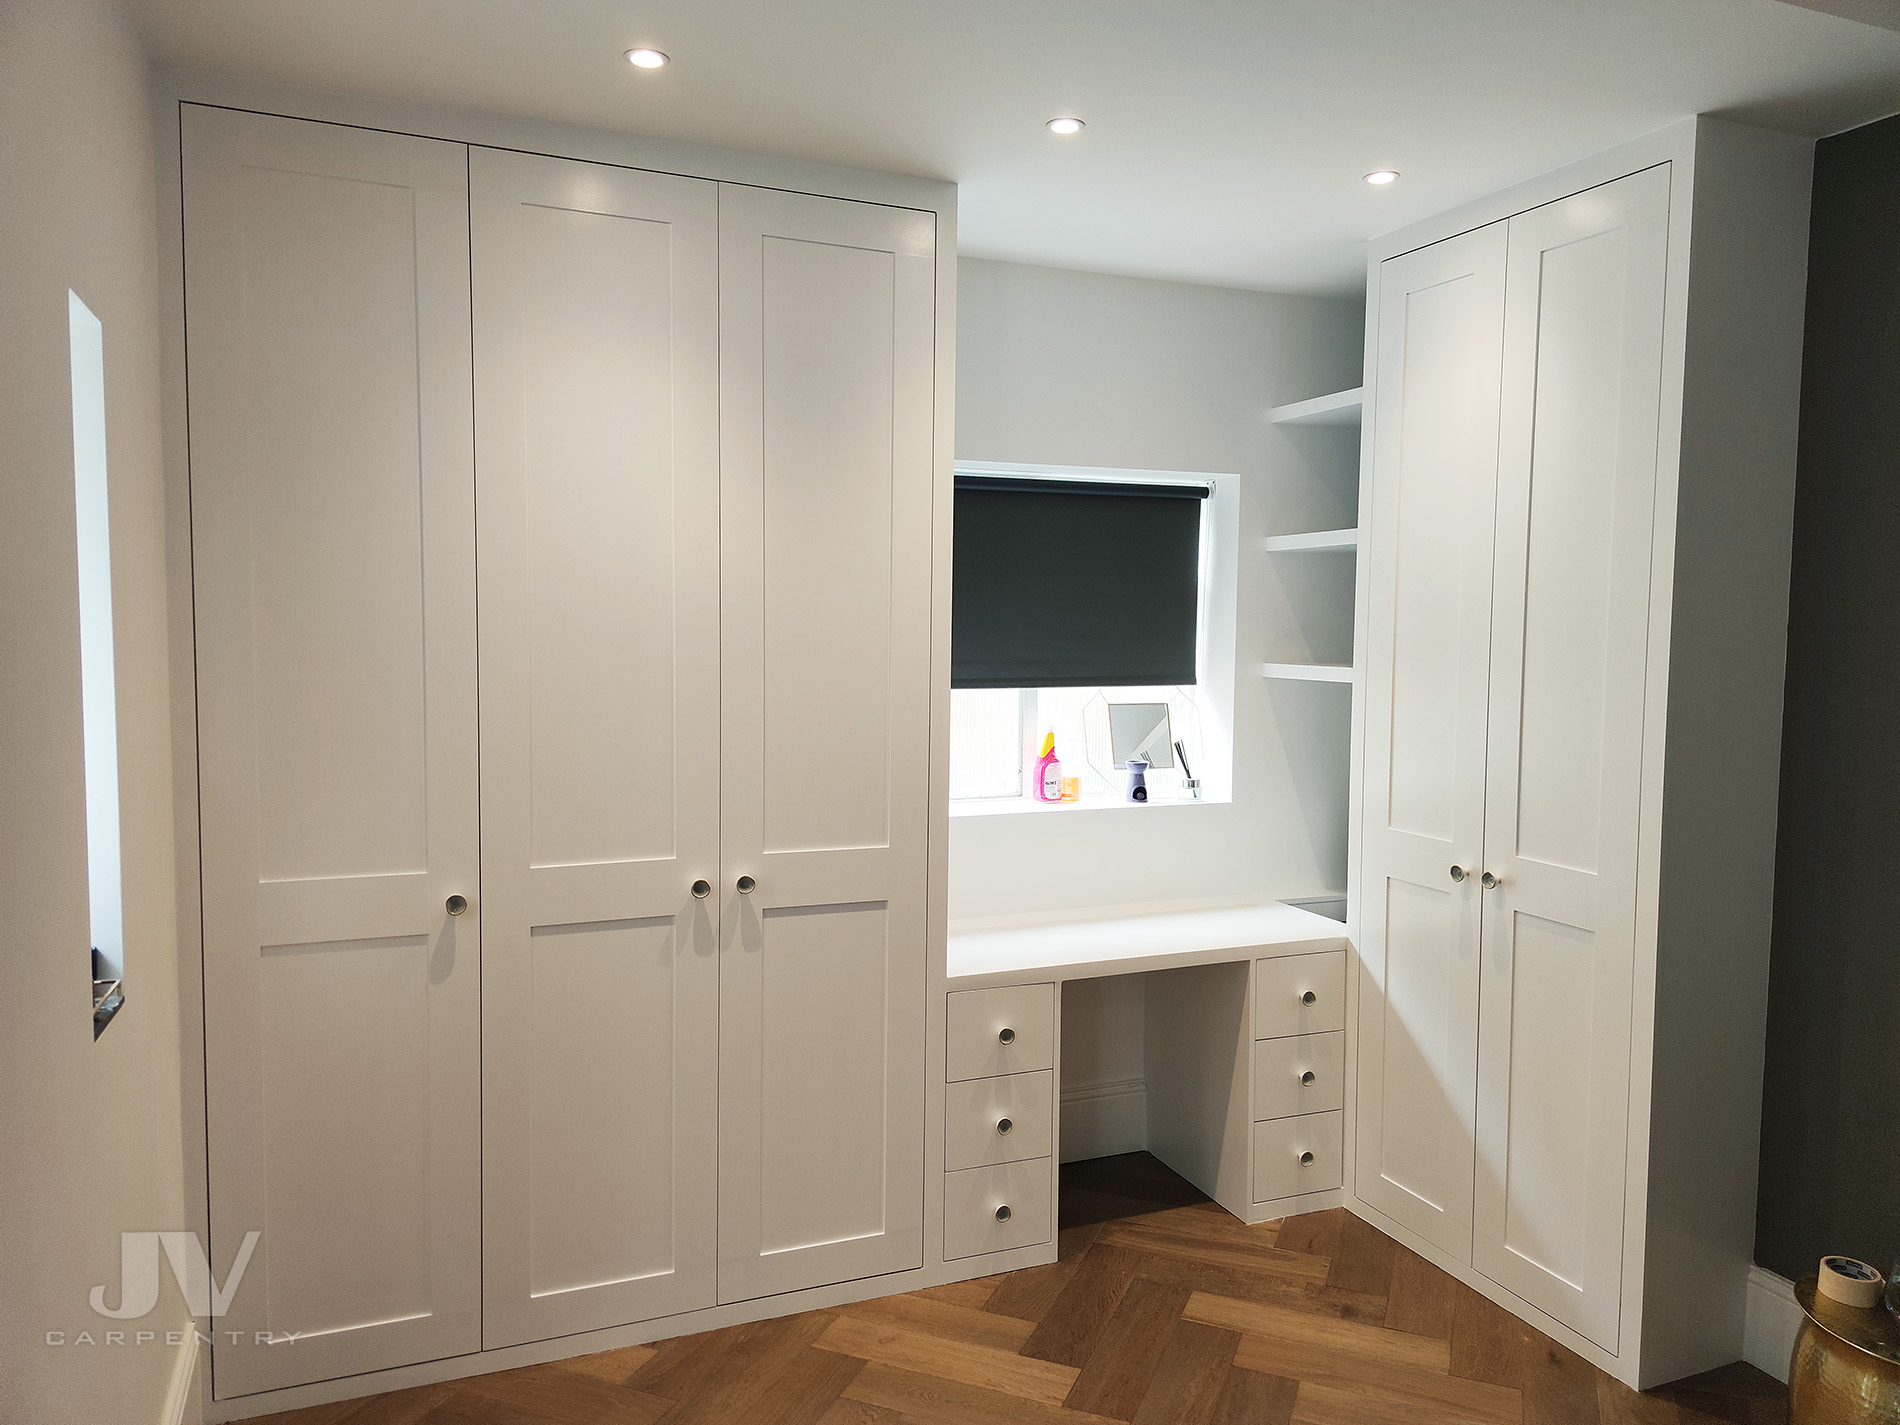 wardrobes with dressing table around the window, Harrow